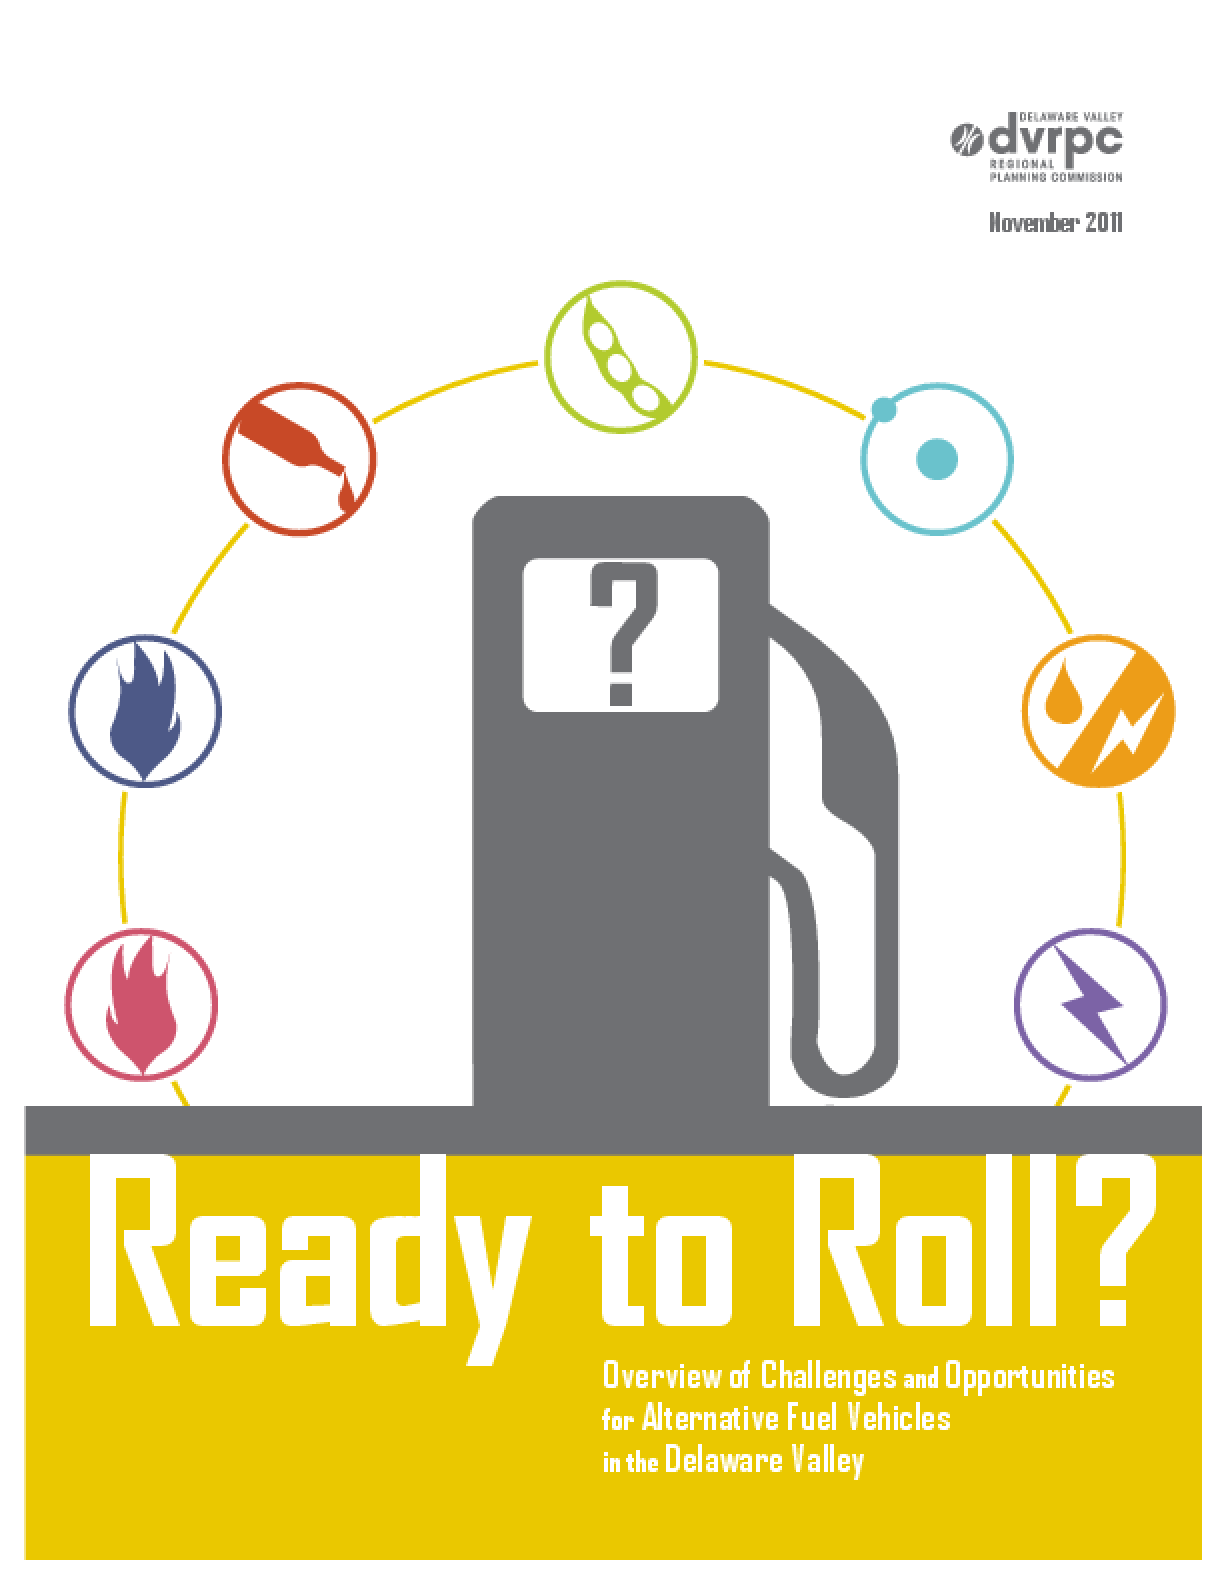 Ready to Roll?: Overview of Challenges and Opportunities